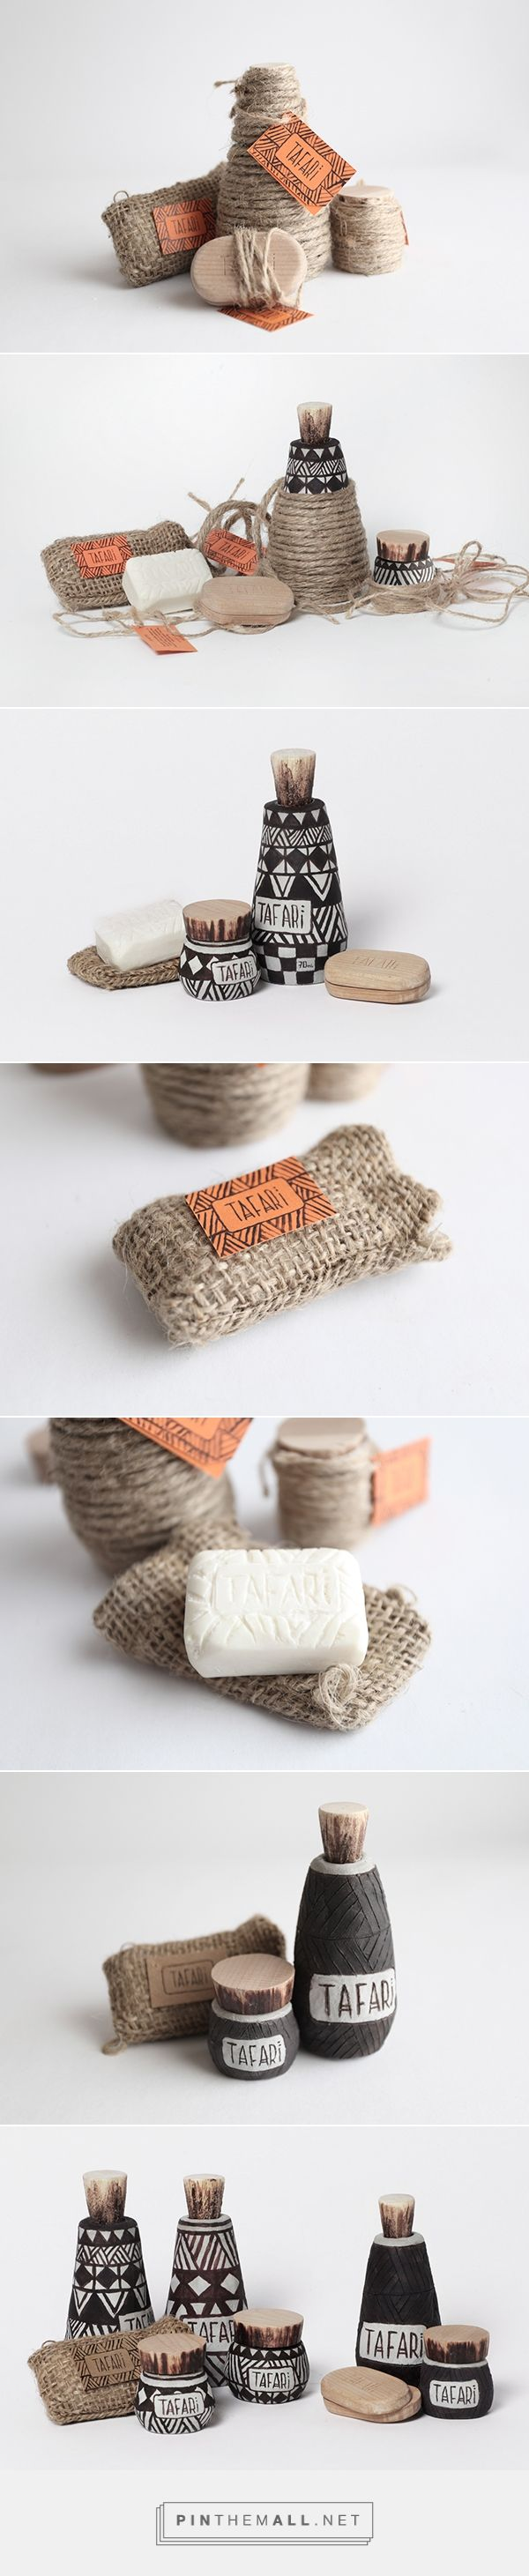 handmade packaging #handmade TAFARI on Behance by Yulia Popova curated by Packaging Diva PD. I just love this handmade packaging design idea.